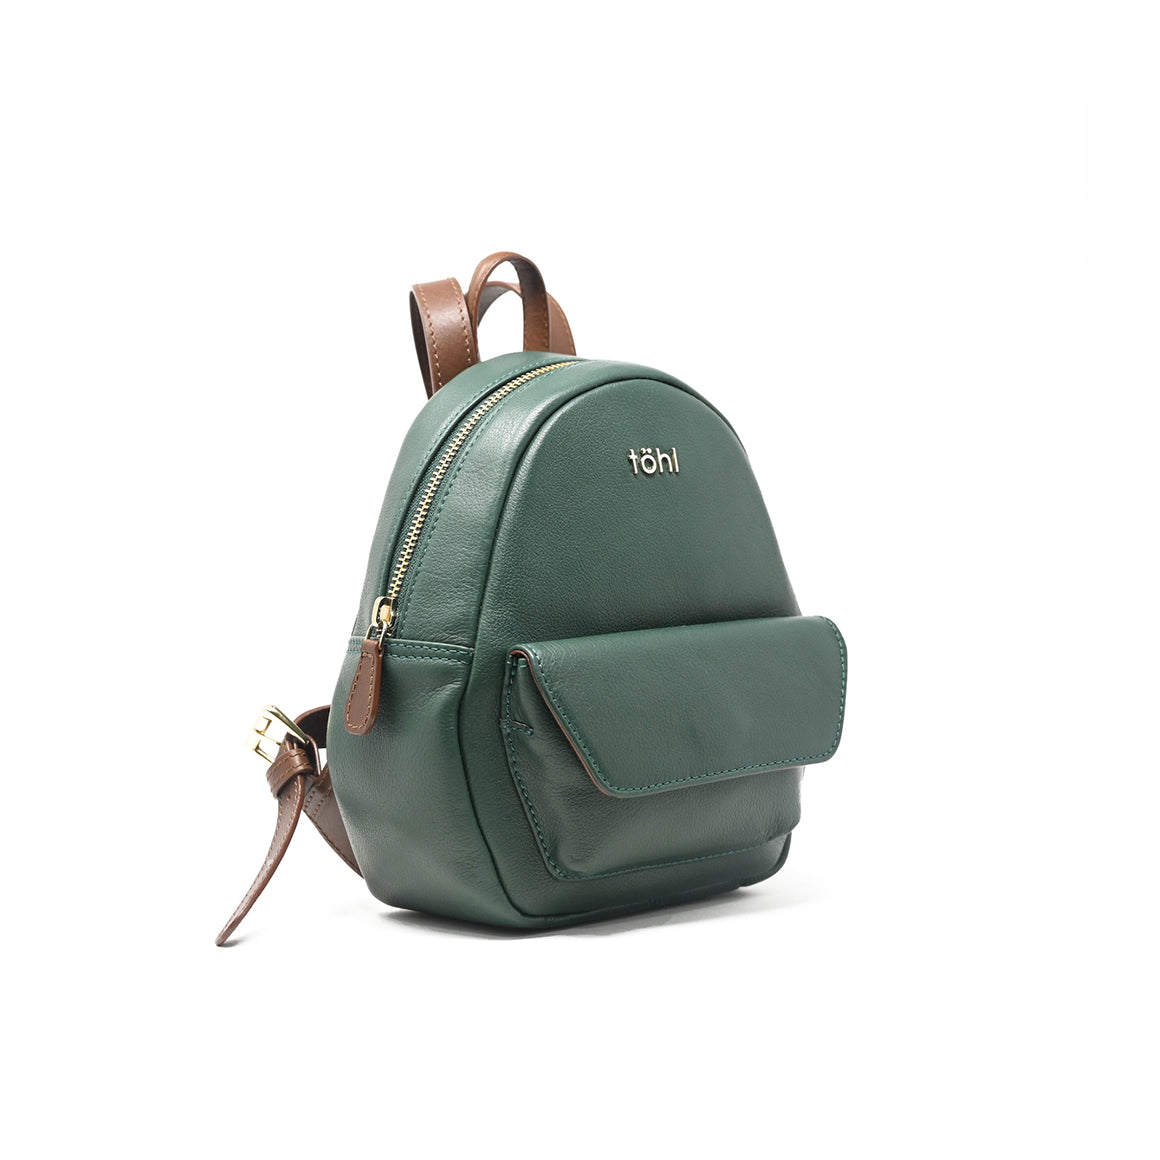 BP0018 - TOHL DEVON WOMEN'S BACKPACK - FOREST GREEN